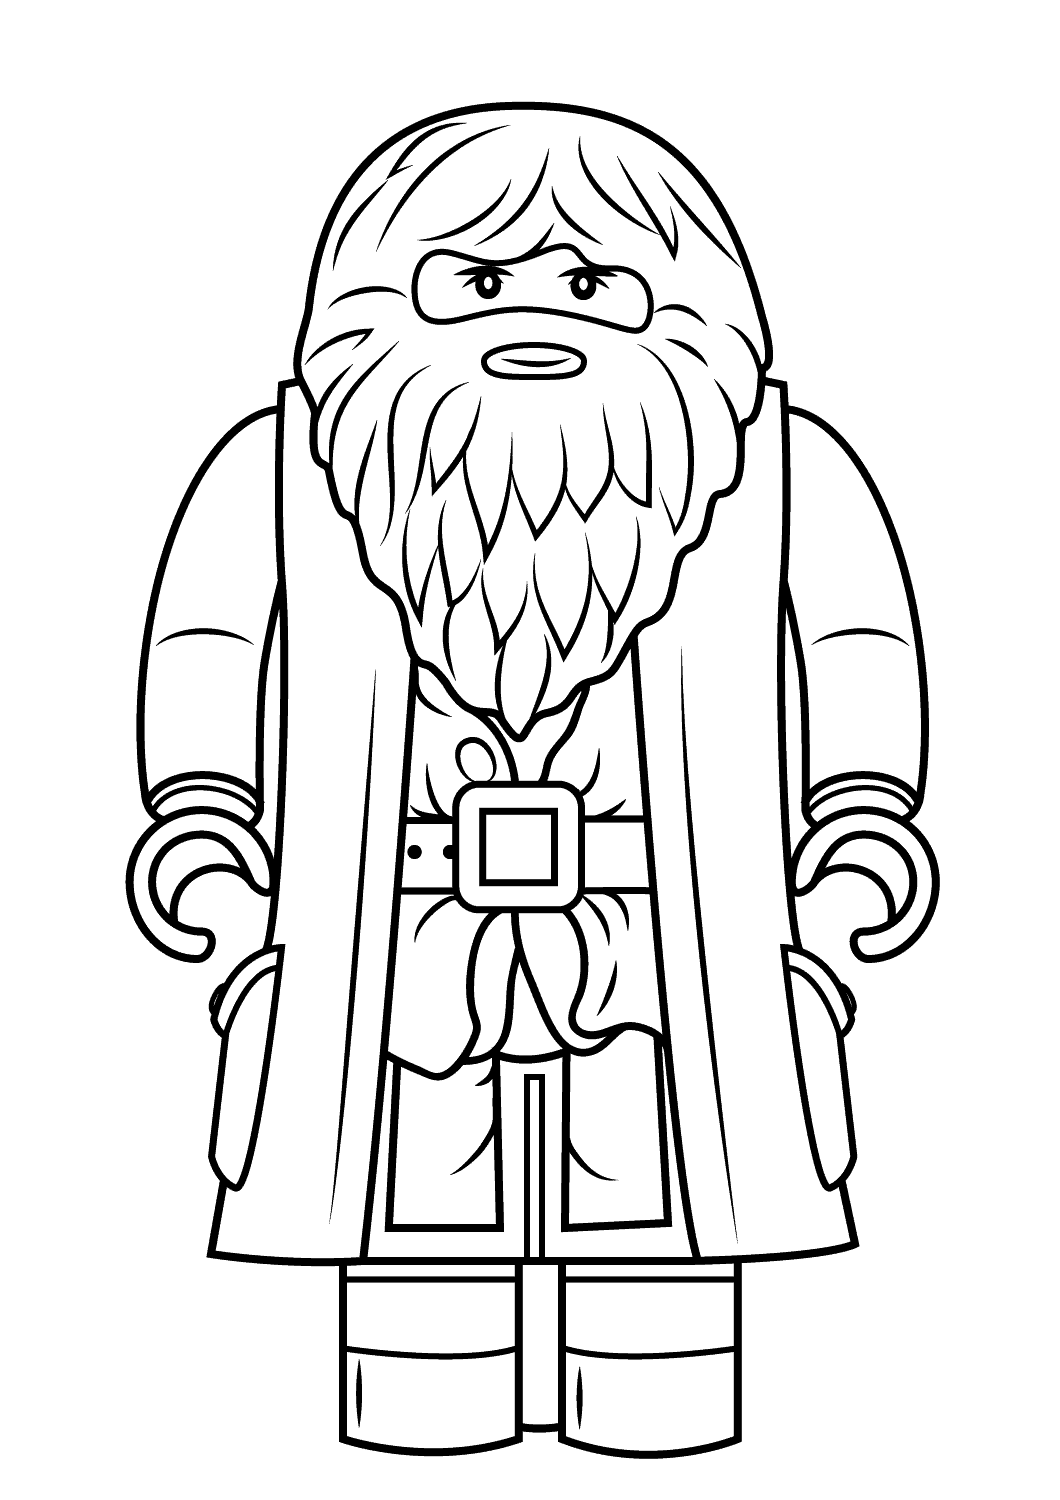 lego groot coloring pages team of lego coloring page free coloring pages online groot lego coloring pages